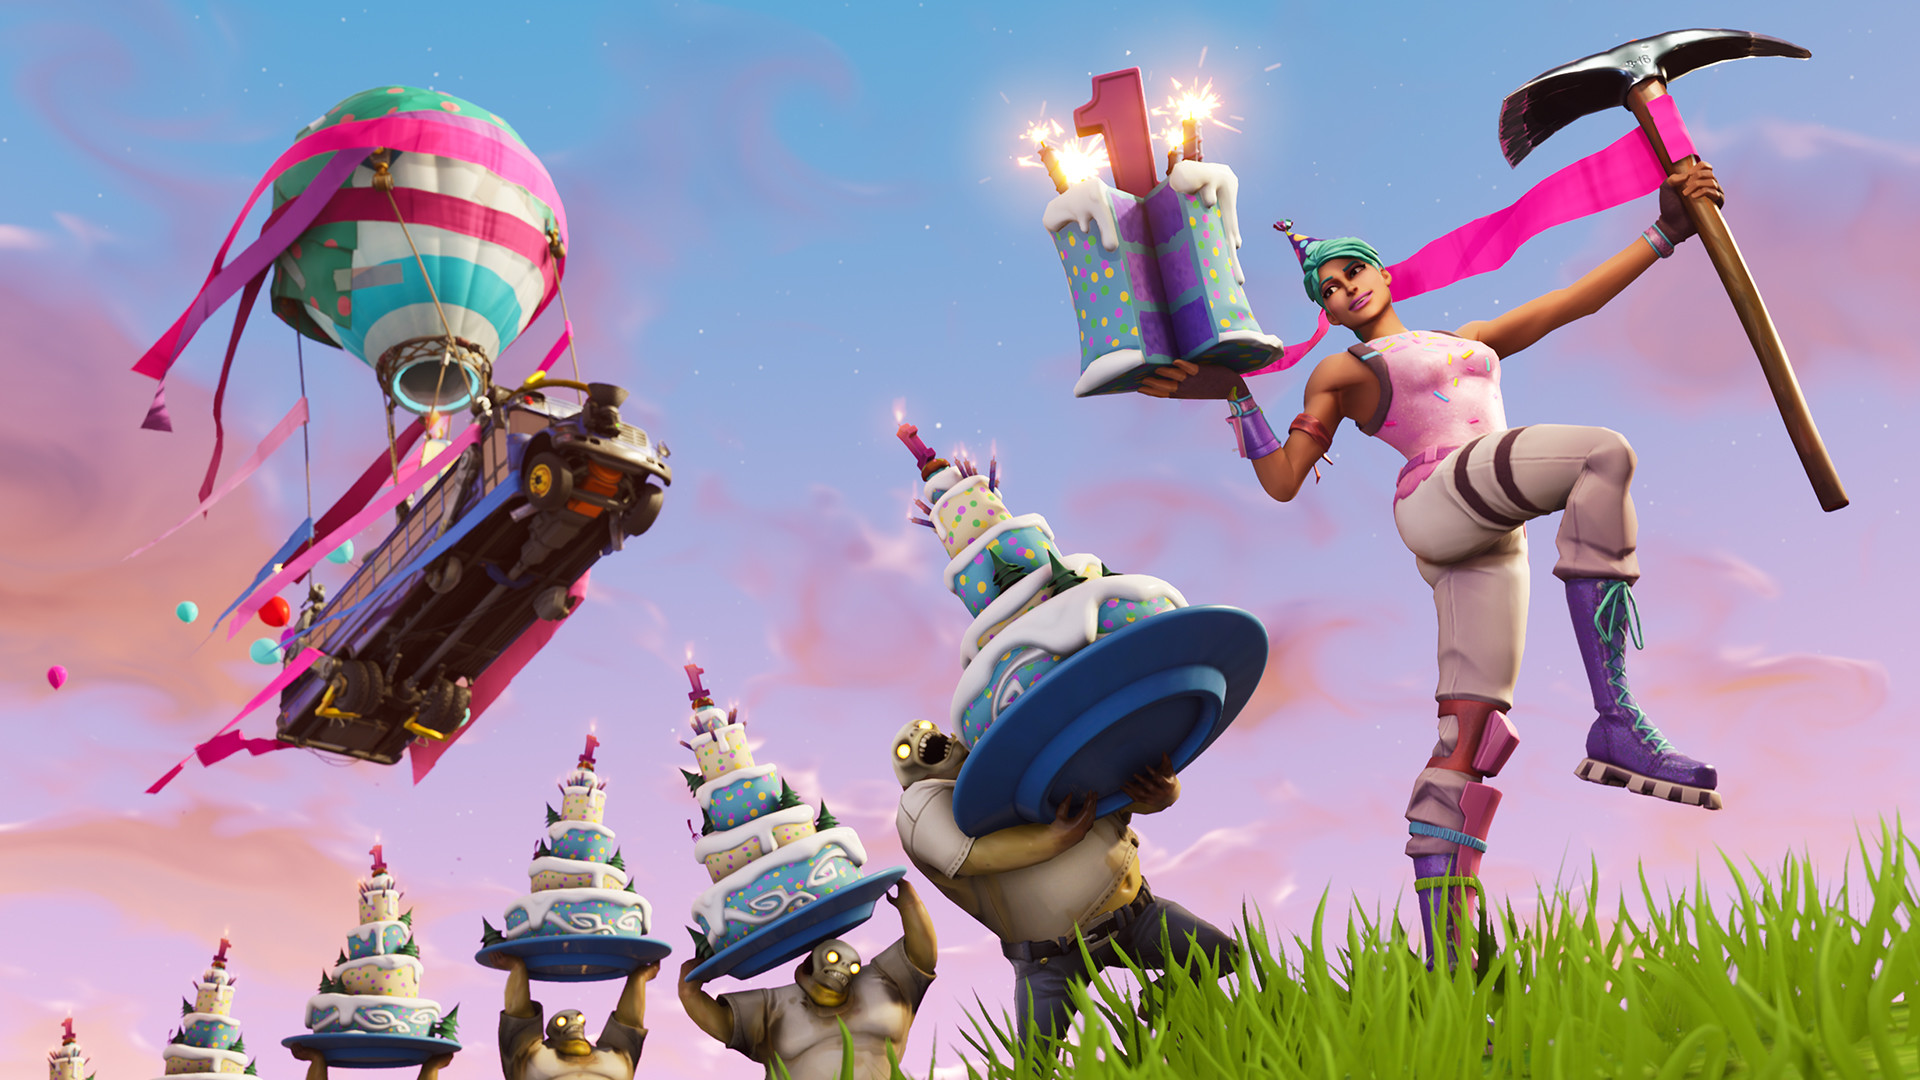 Fortnite Is Celebrating Its First Birthday With Free In-Game Cosmetic Items